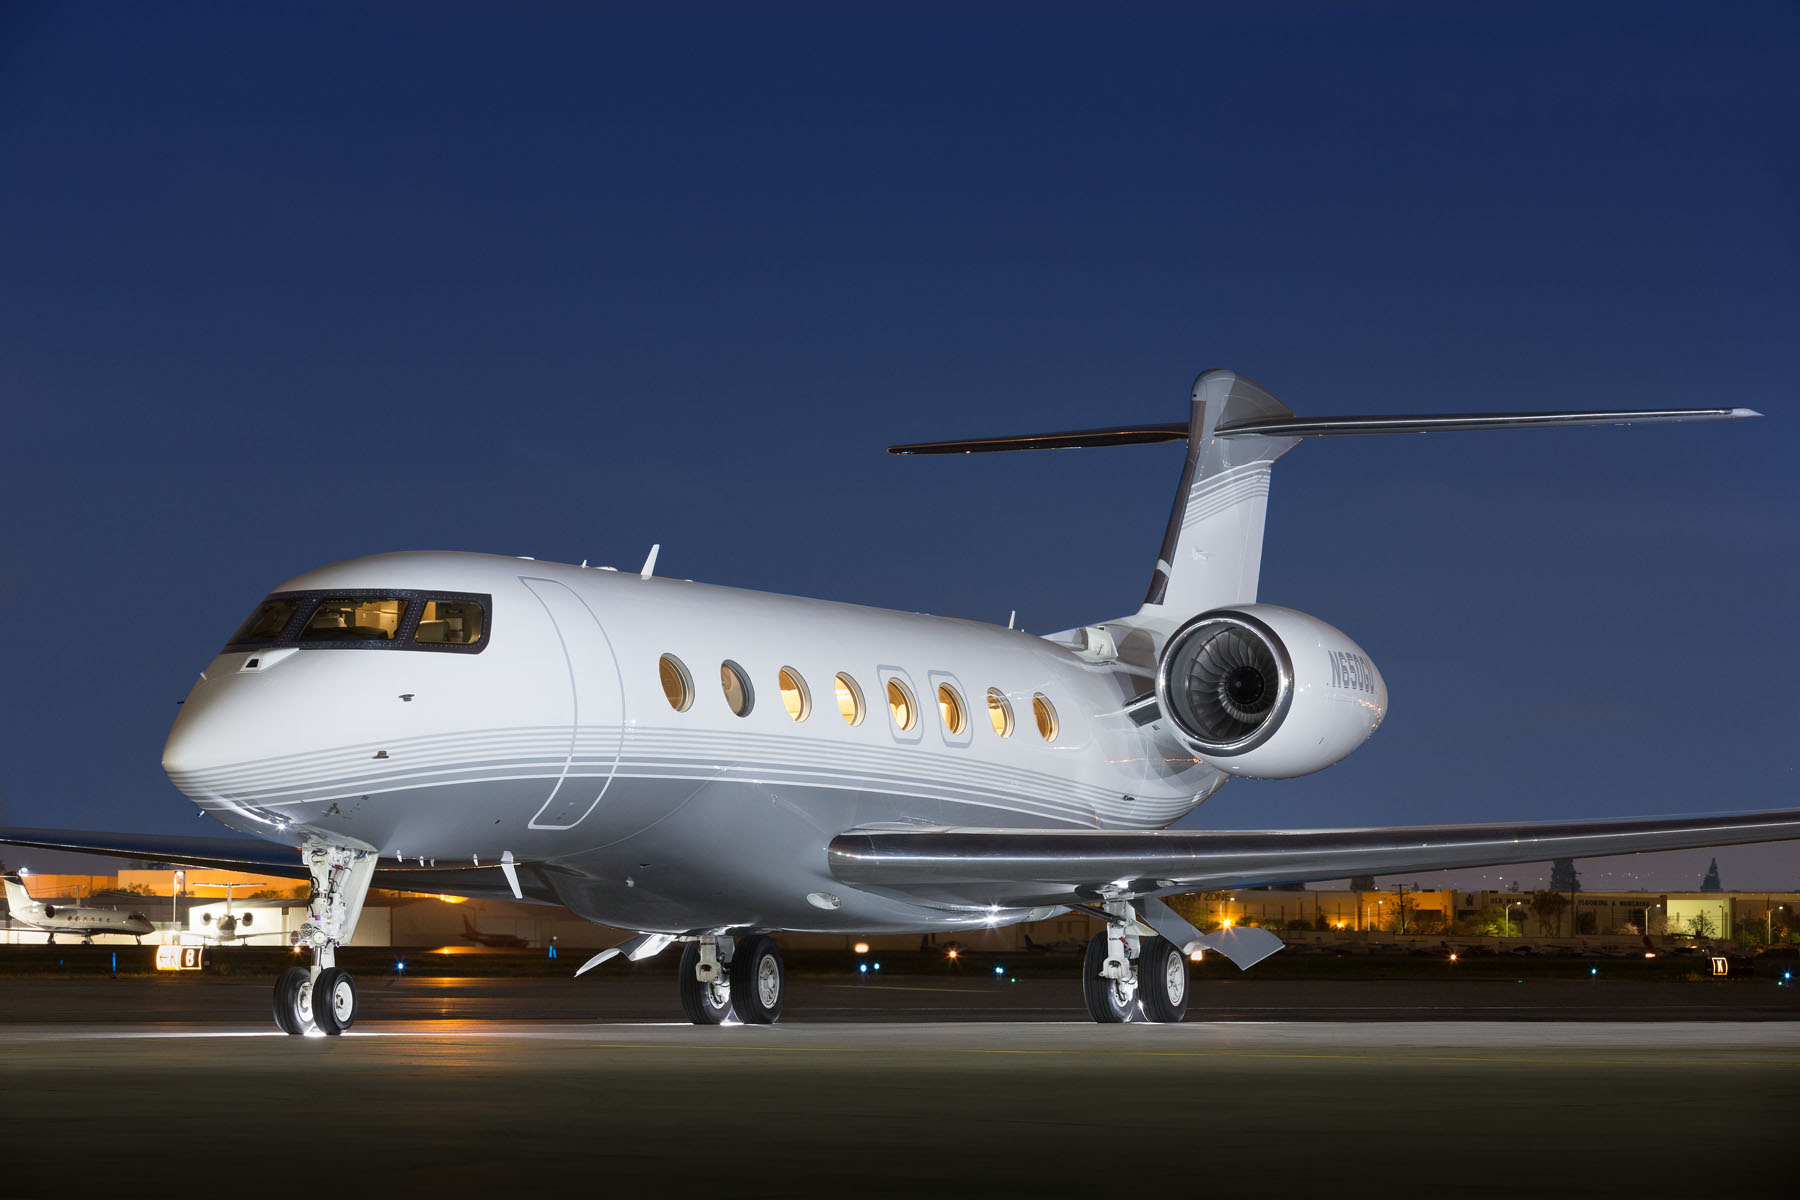 CLAY LACY AVIATION INTRODUCES THE GULFSTREAM G650 TO ITS GLOBAL CHARTER FLEET